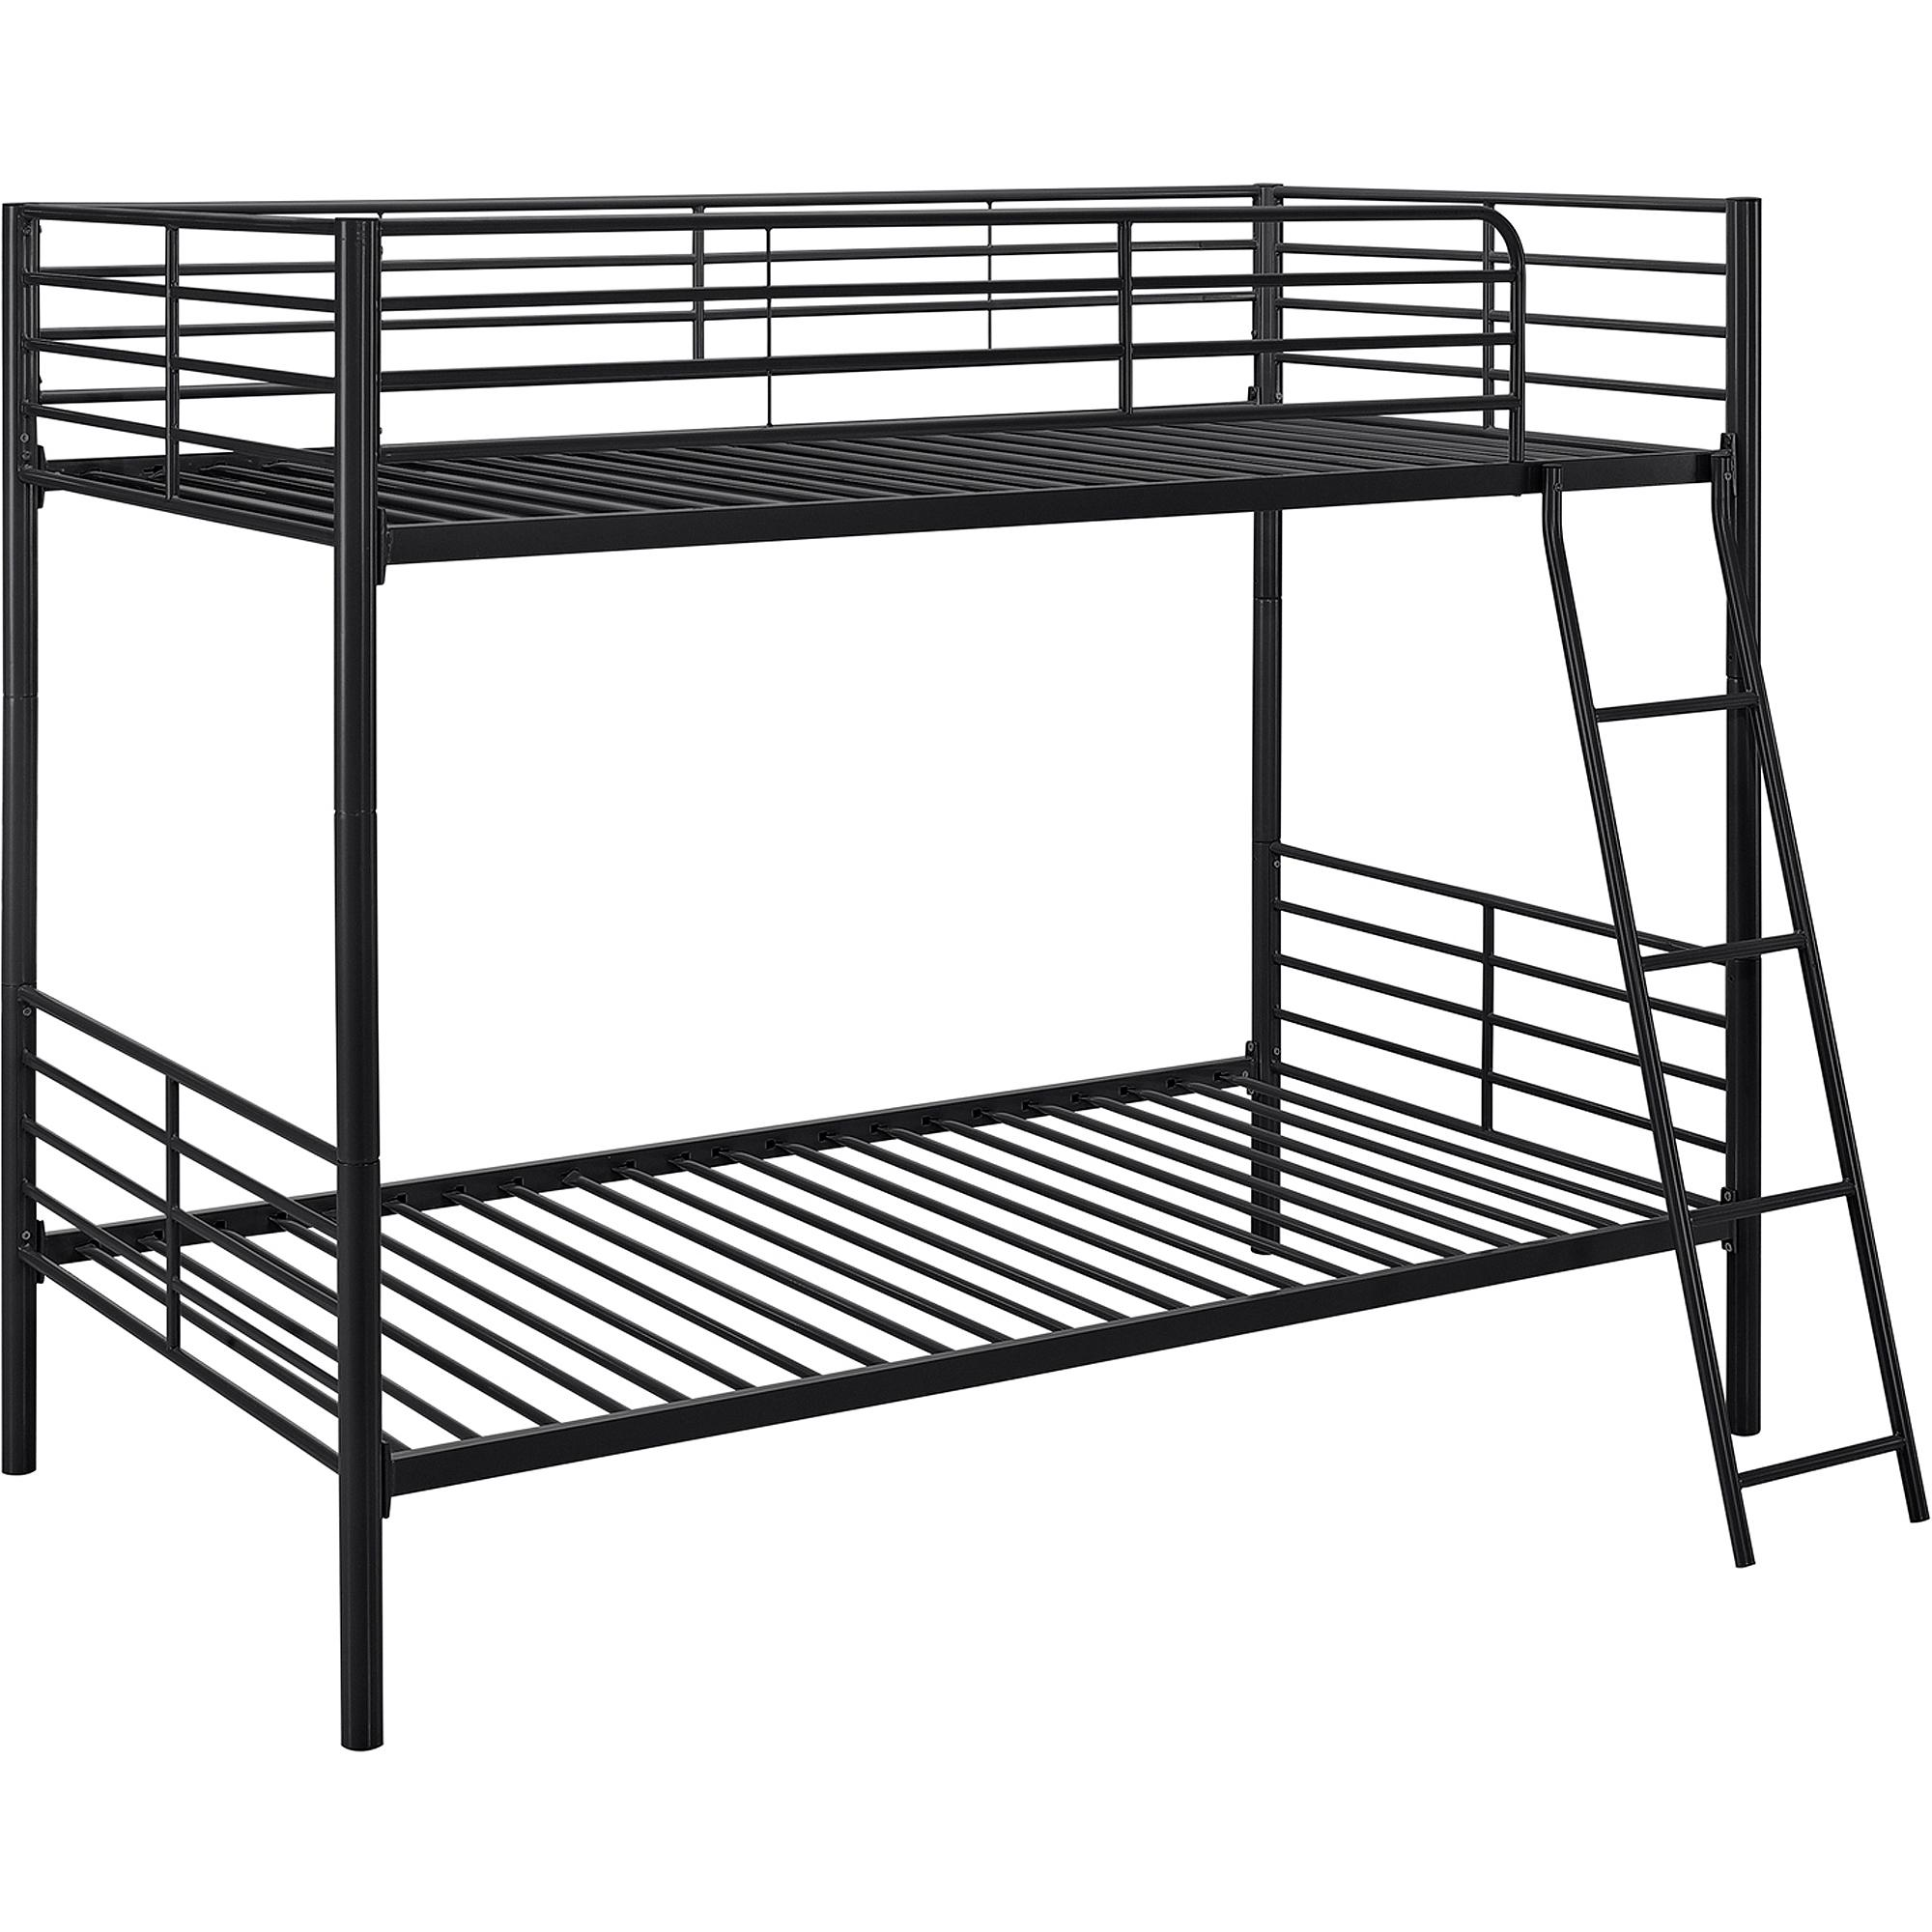 2000x2000 Bed Bunk Bed Drawing